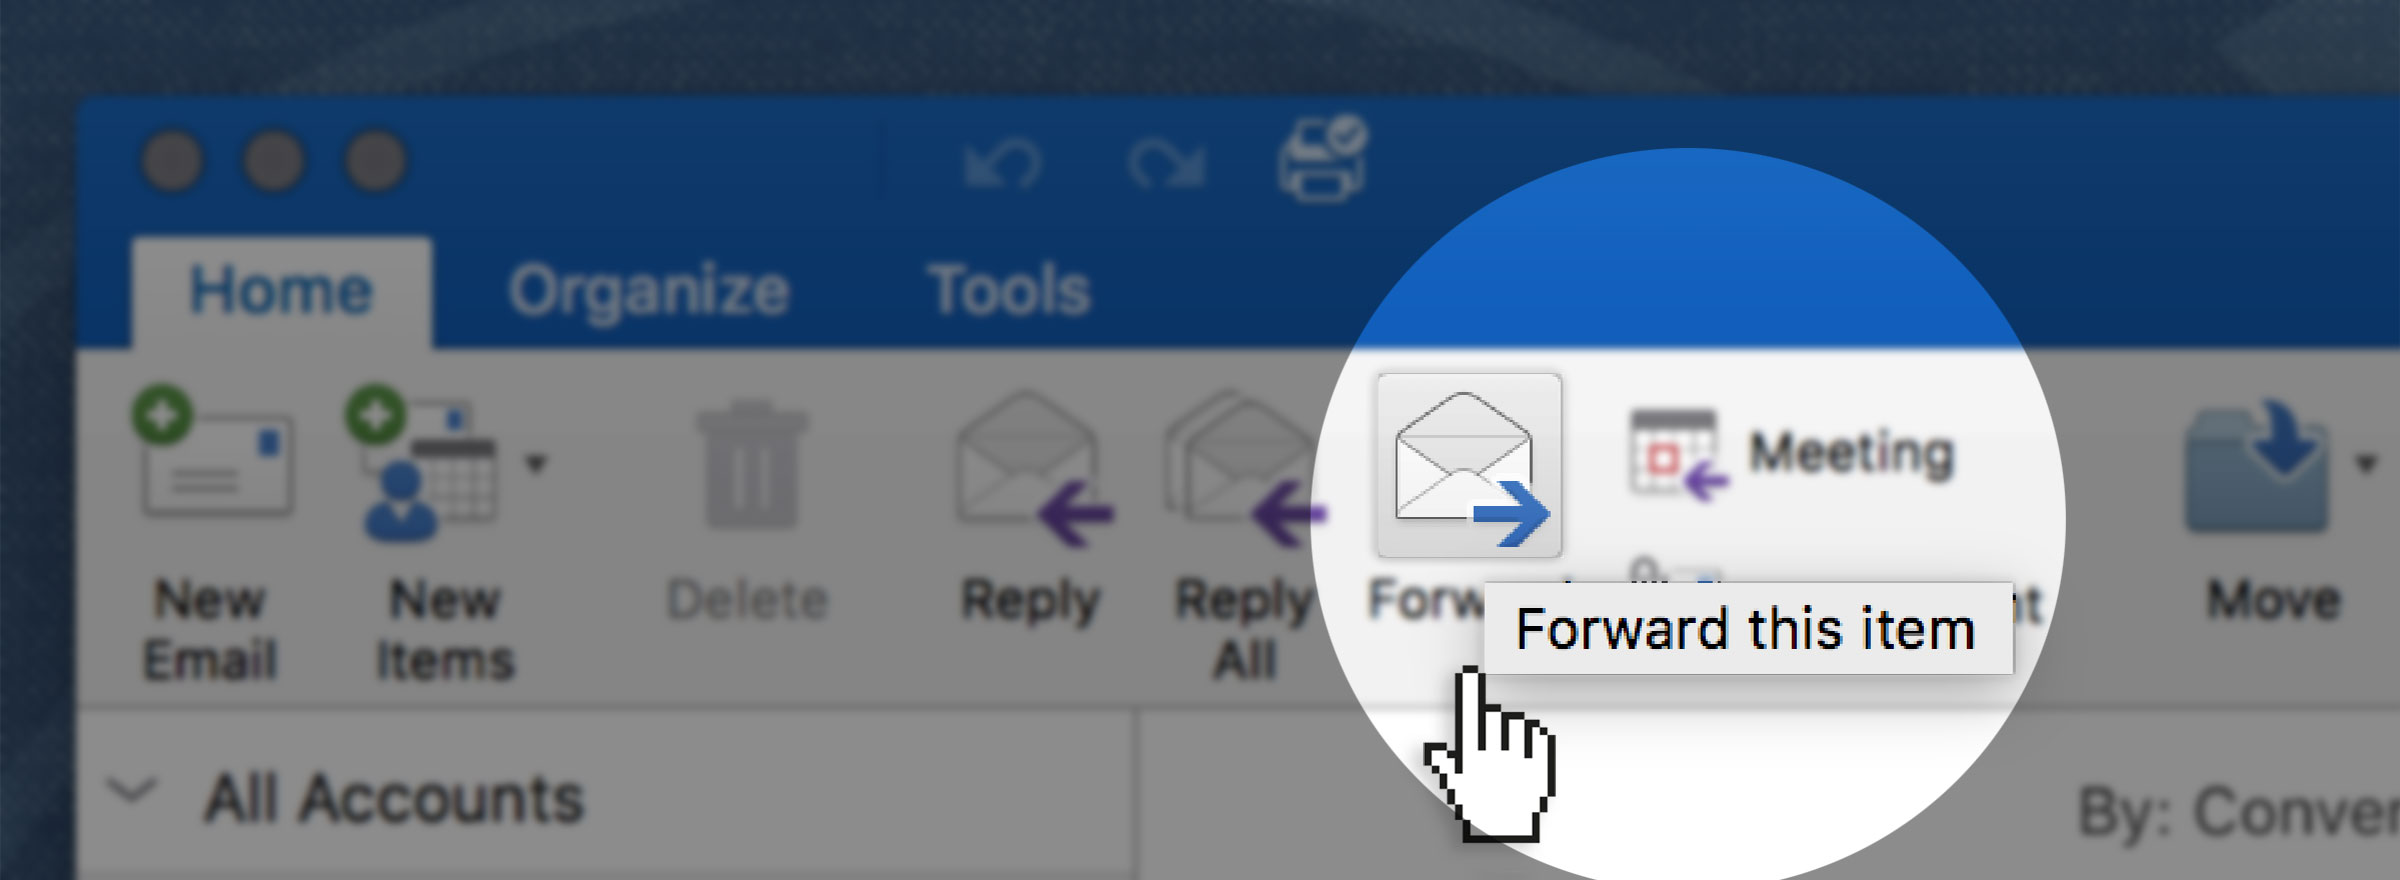 screenshot of a hand about to click on an envelope icon to forward something